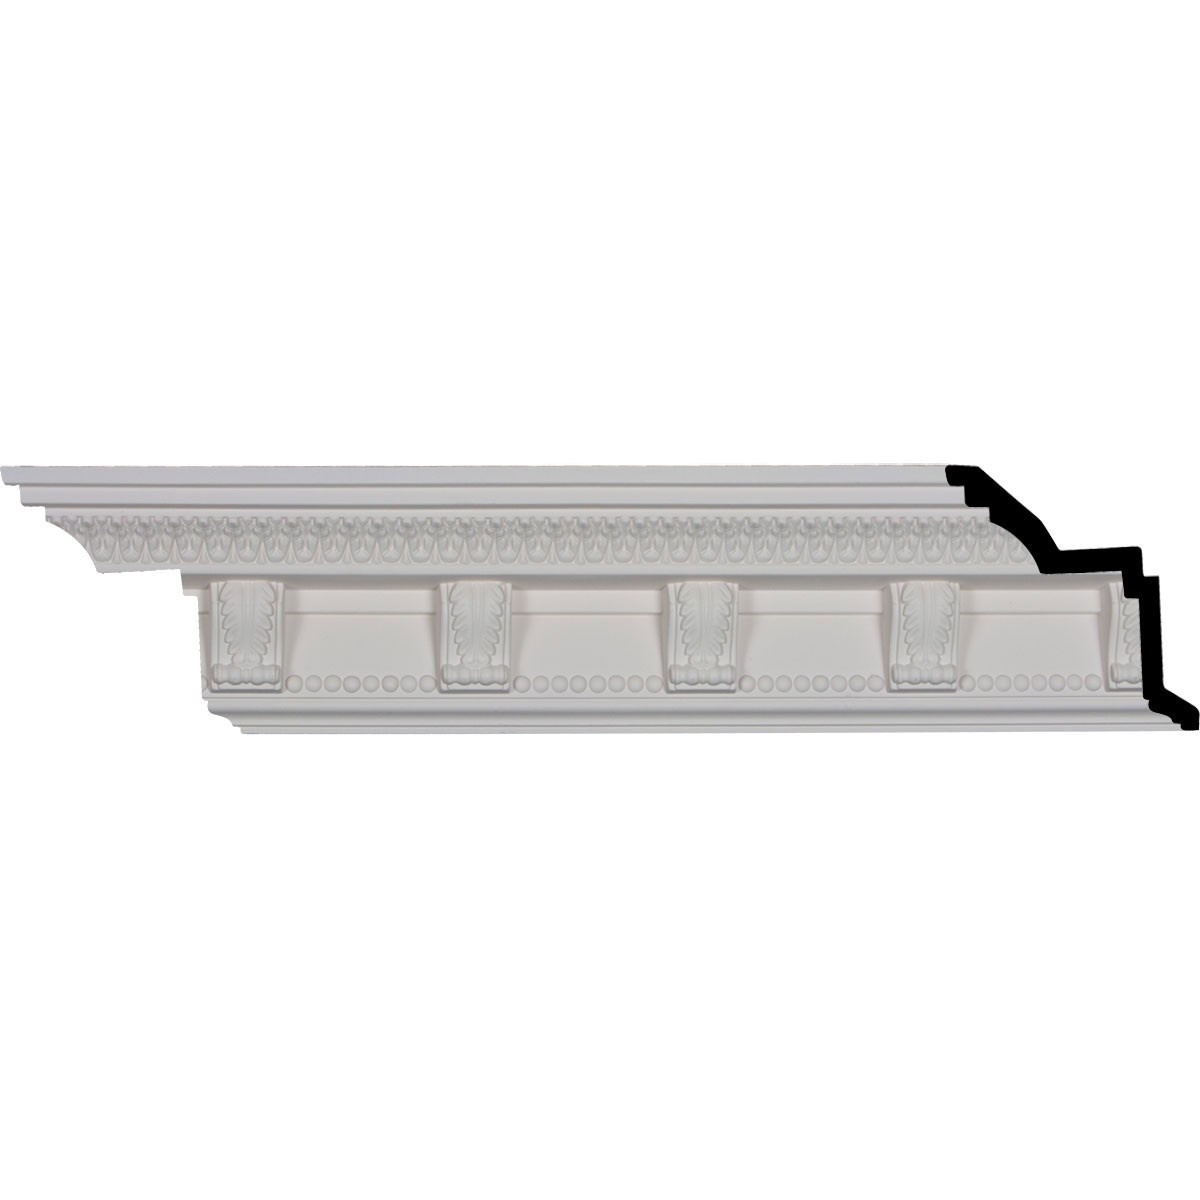 "EM-MLD04X04X06MC - 4 7/8""H x 4 1/4""P x 6 1/2""F x 96 1/8""L, (4 3/4"" Repeat), Marcus Crown Moulding"